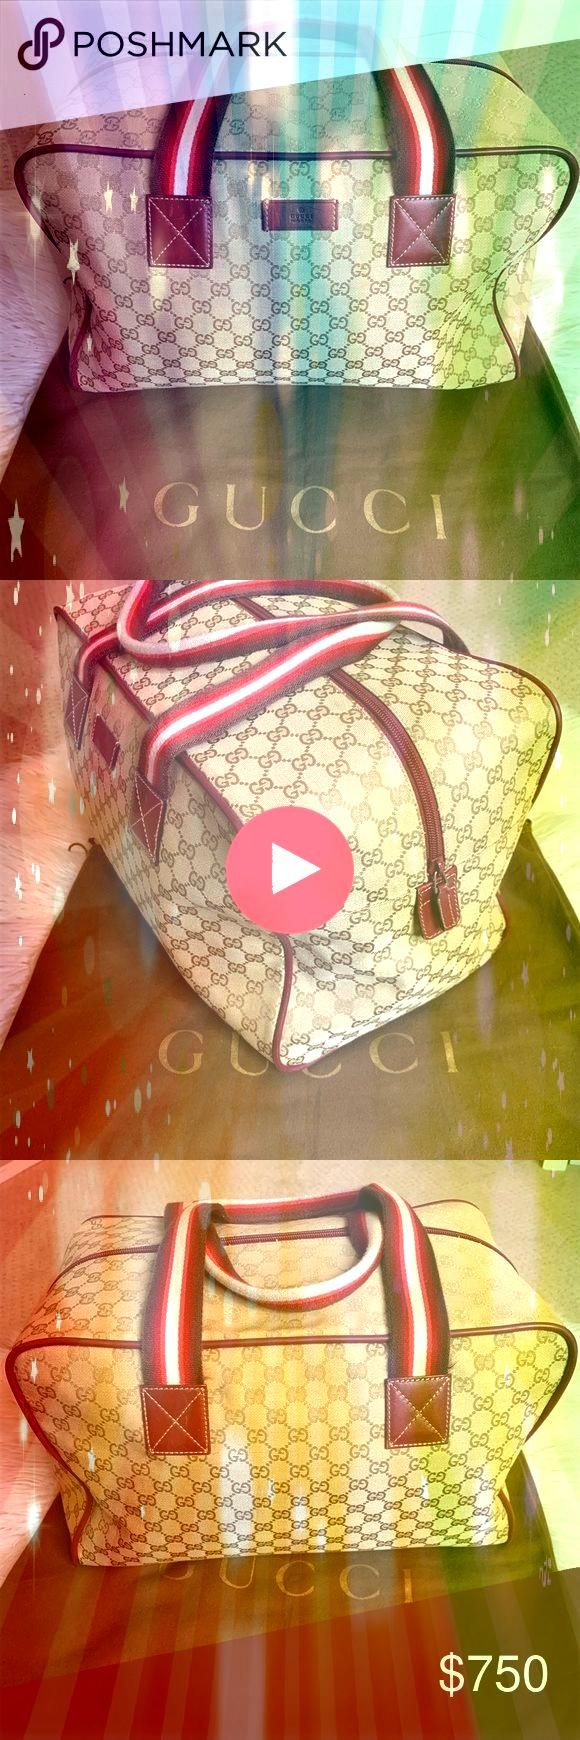 TRAVEL DUFFLE BAG GUCCI TRAVEL DUFFLE BAG PERFECT TRAVEL BAG FOR TRIPS  G These DIY Portable Playsets Will Keep Your Kids Occupied In Any Situation 10 Things Productive M...